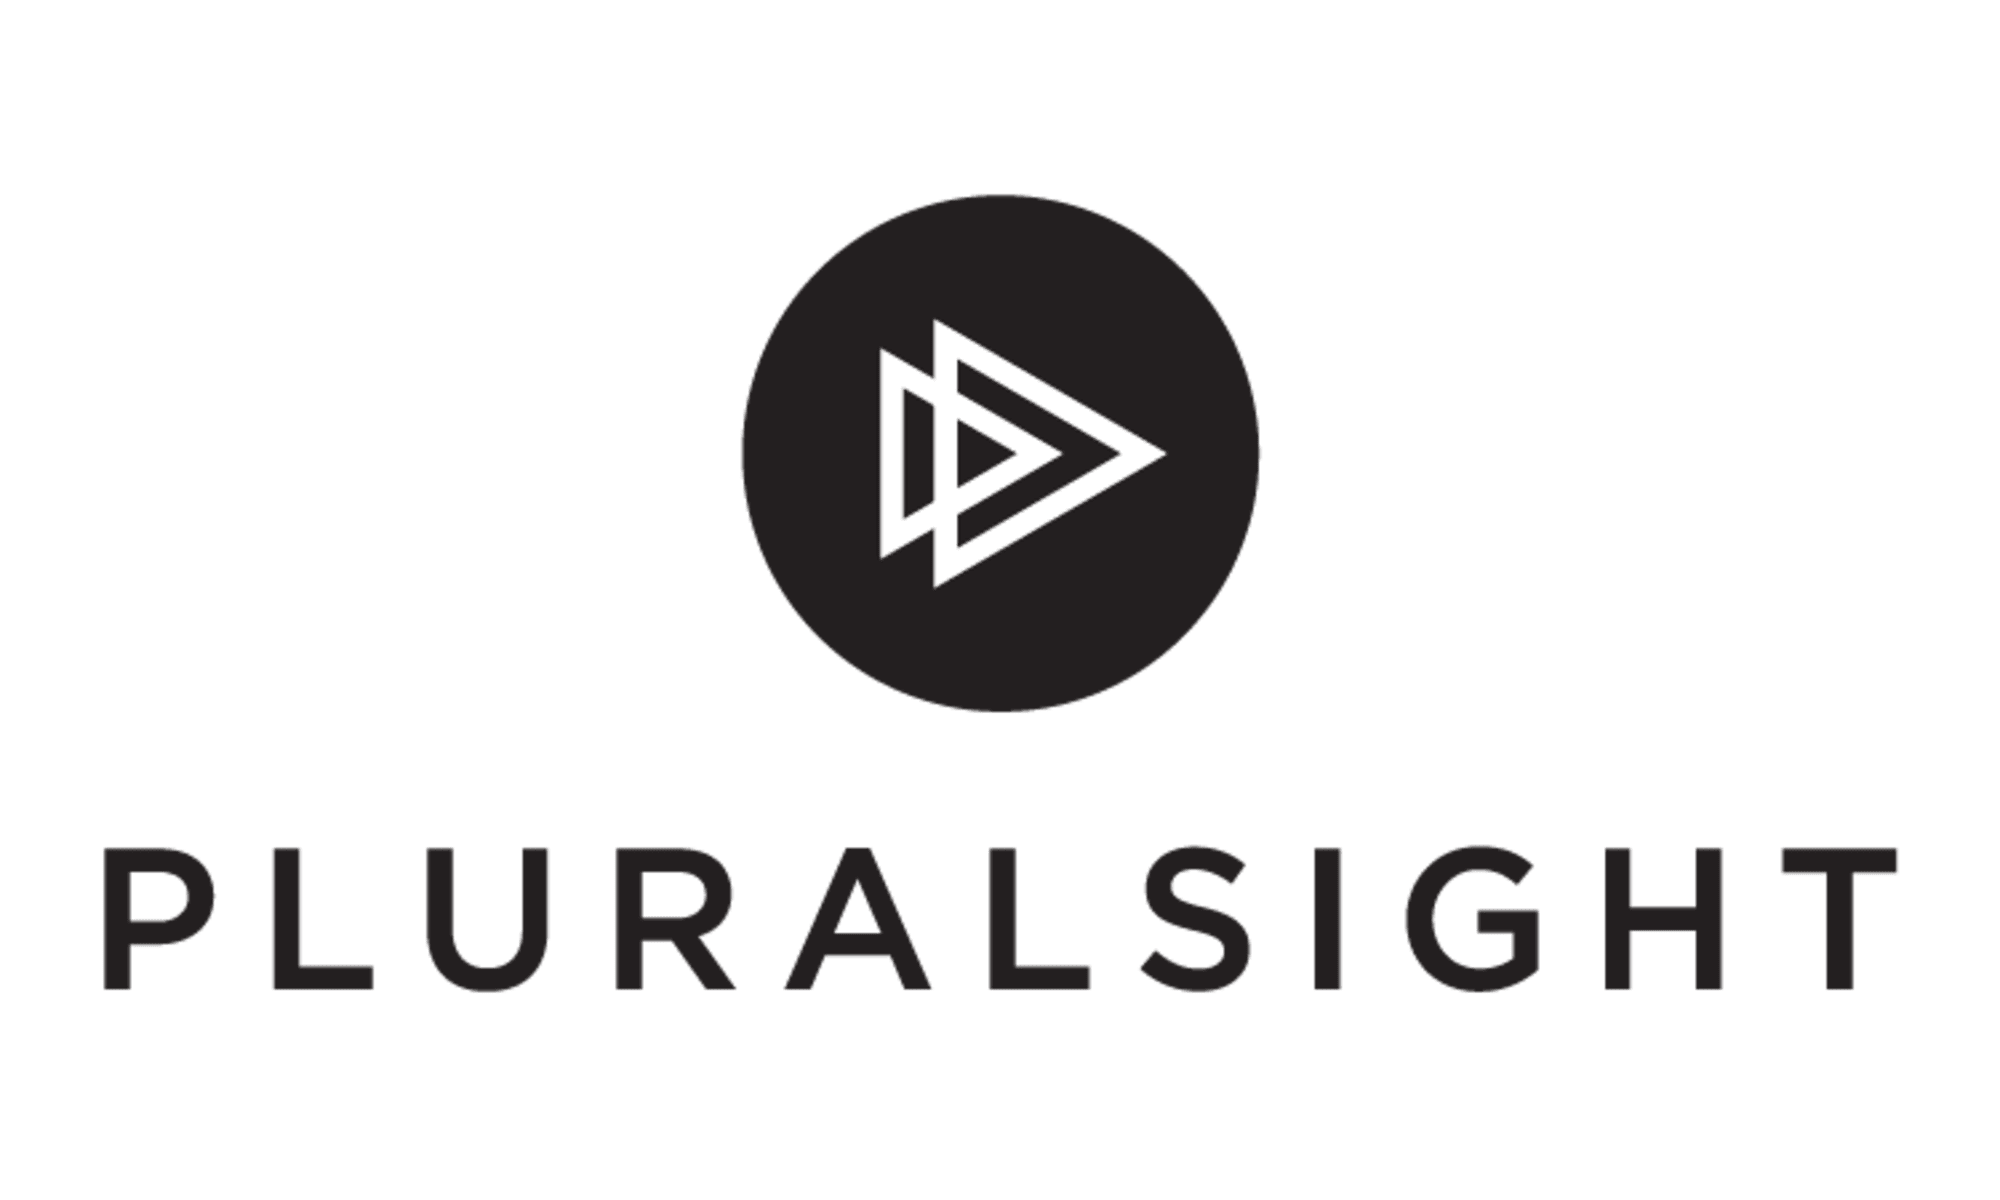 Why I Create IT Courses for Pluralsight